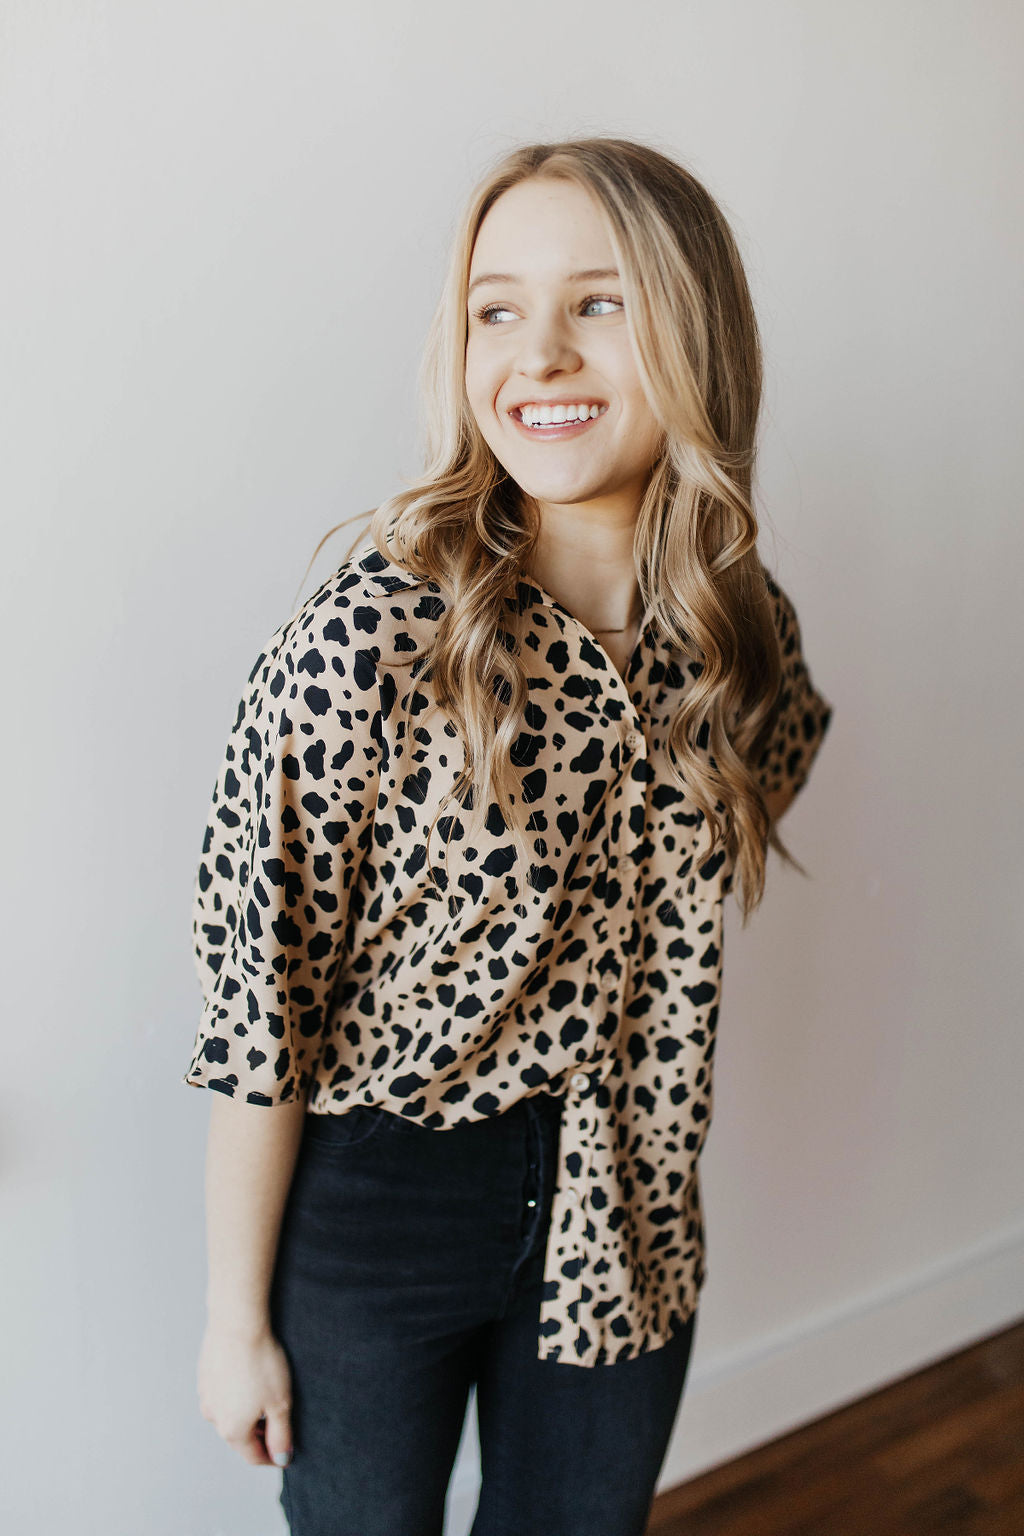 *NEW* BUDDY LOVE PERRY OVERSIZED BUTTON UP TOP SPECKLED